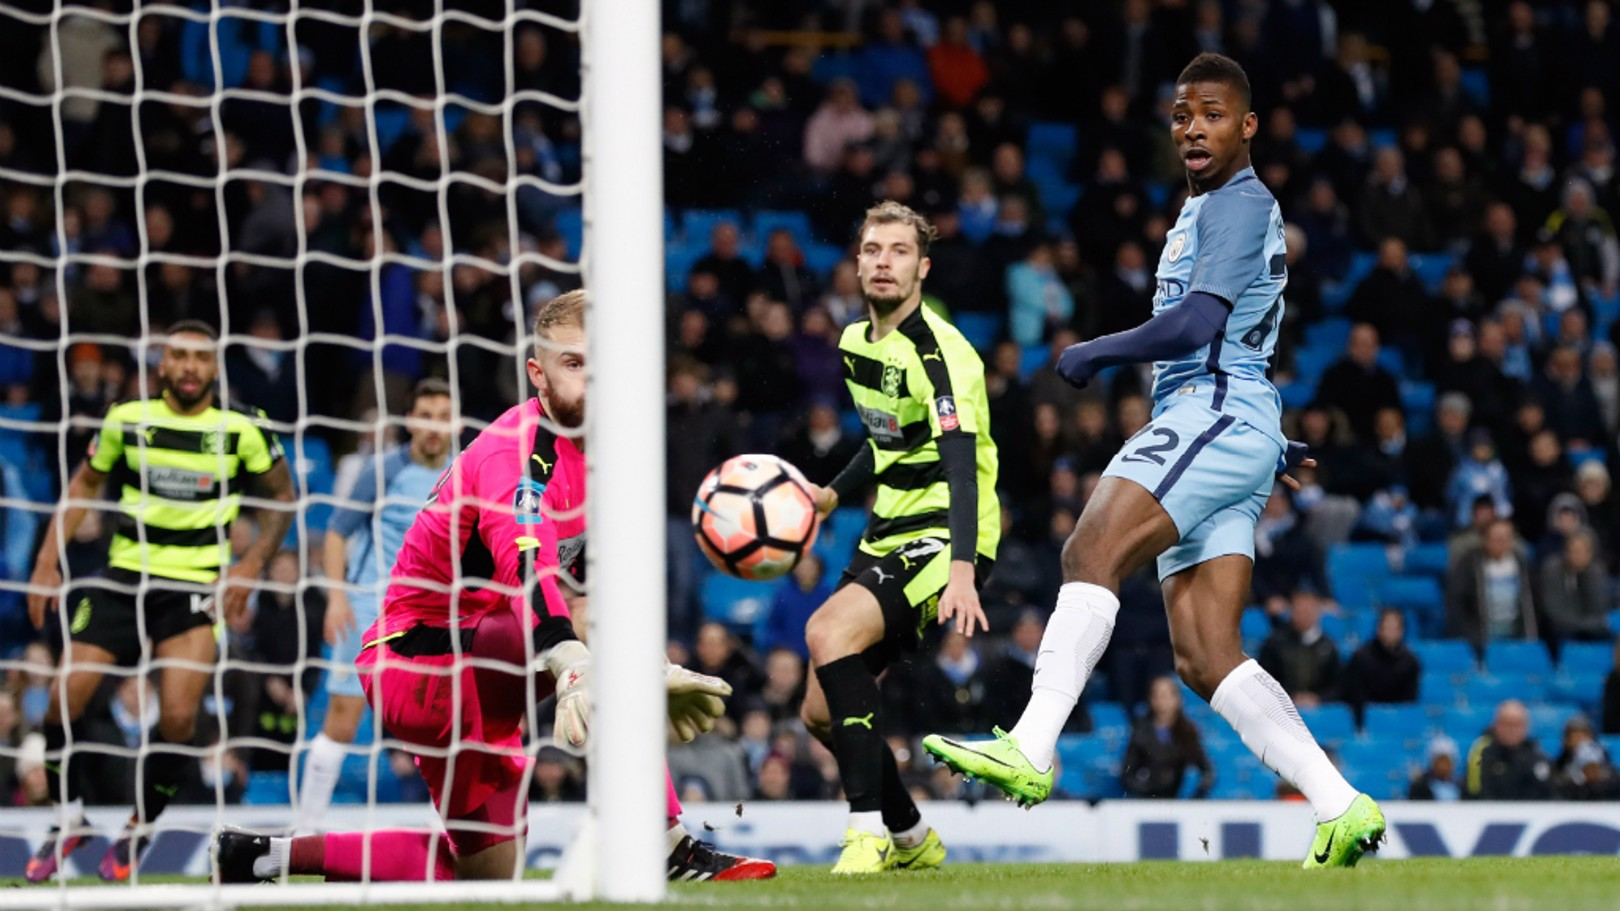 Iheanacho hails City spirit ahead of Arsenal test